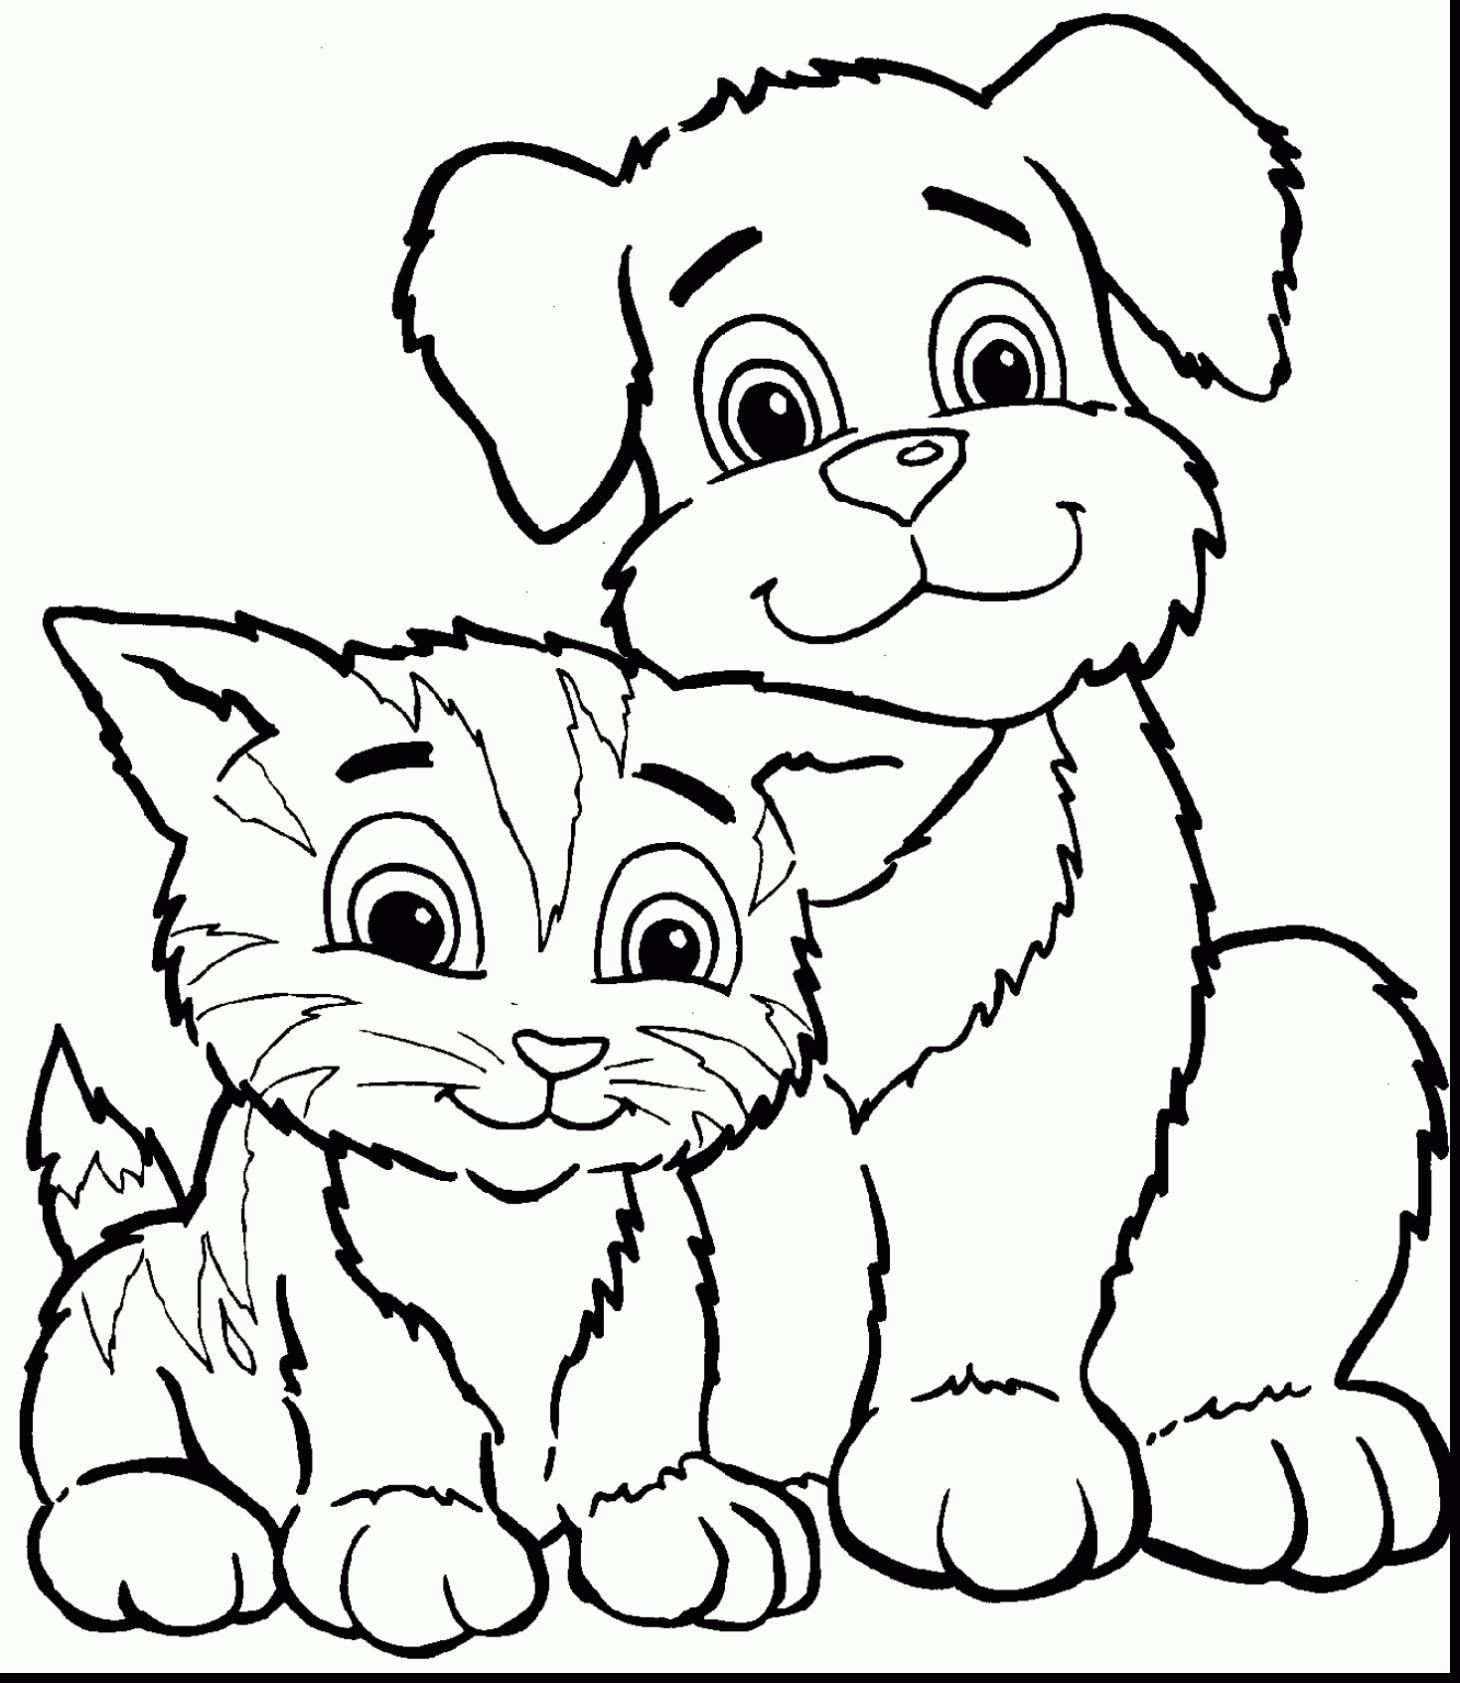 Coloring Pages Of Cats Highest Cat And Dog Coloring Pages Cats Dogs Page 13 Free Photosheep